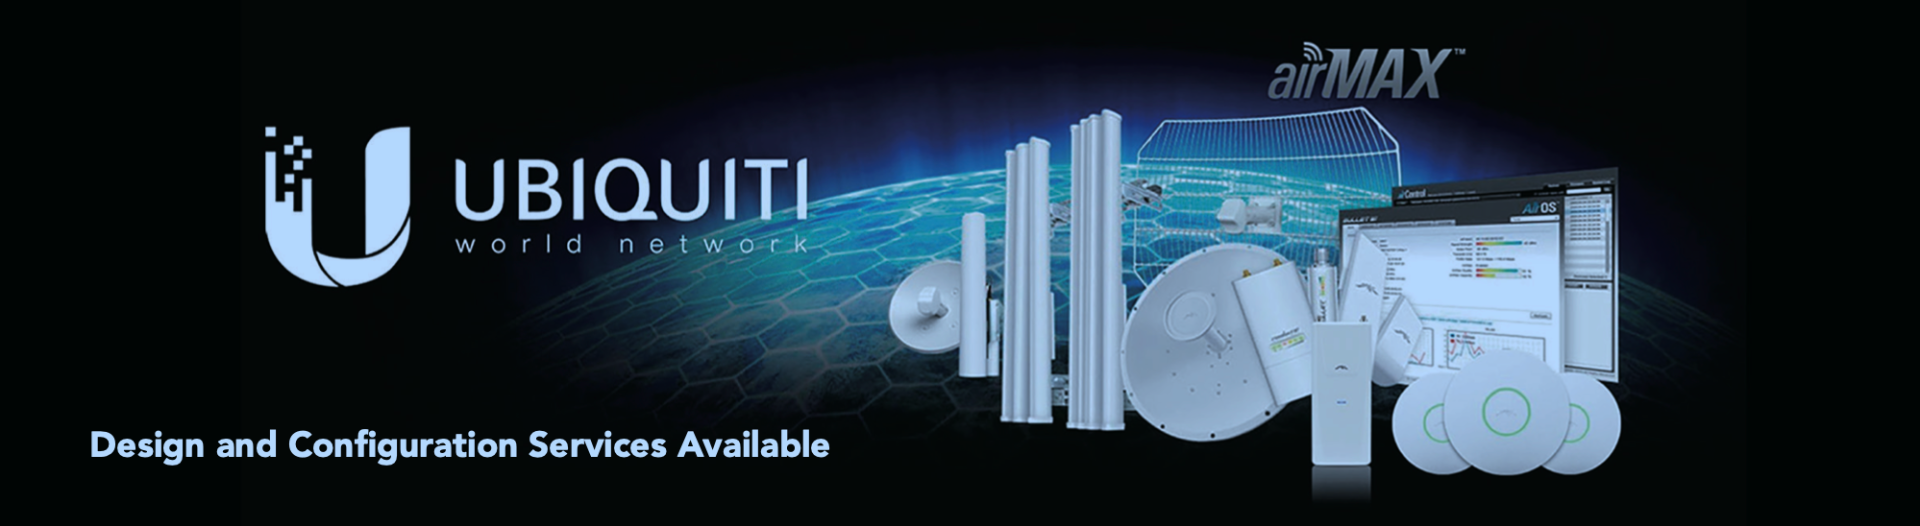 Ubiquiti Wireless device